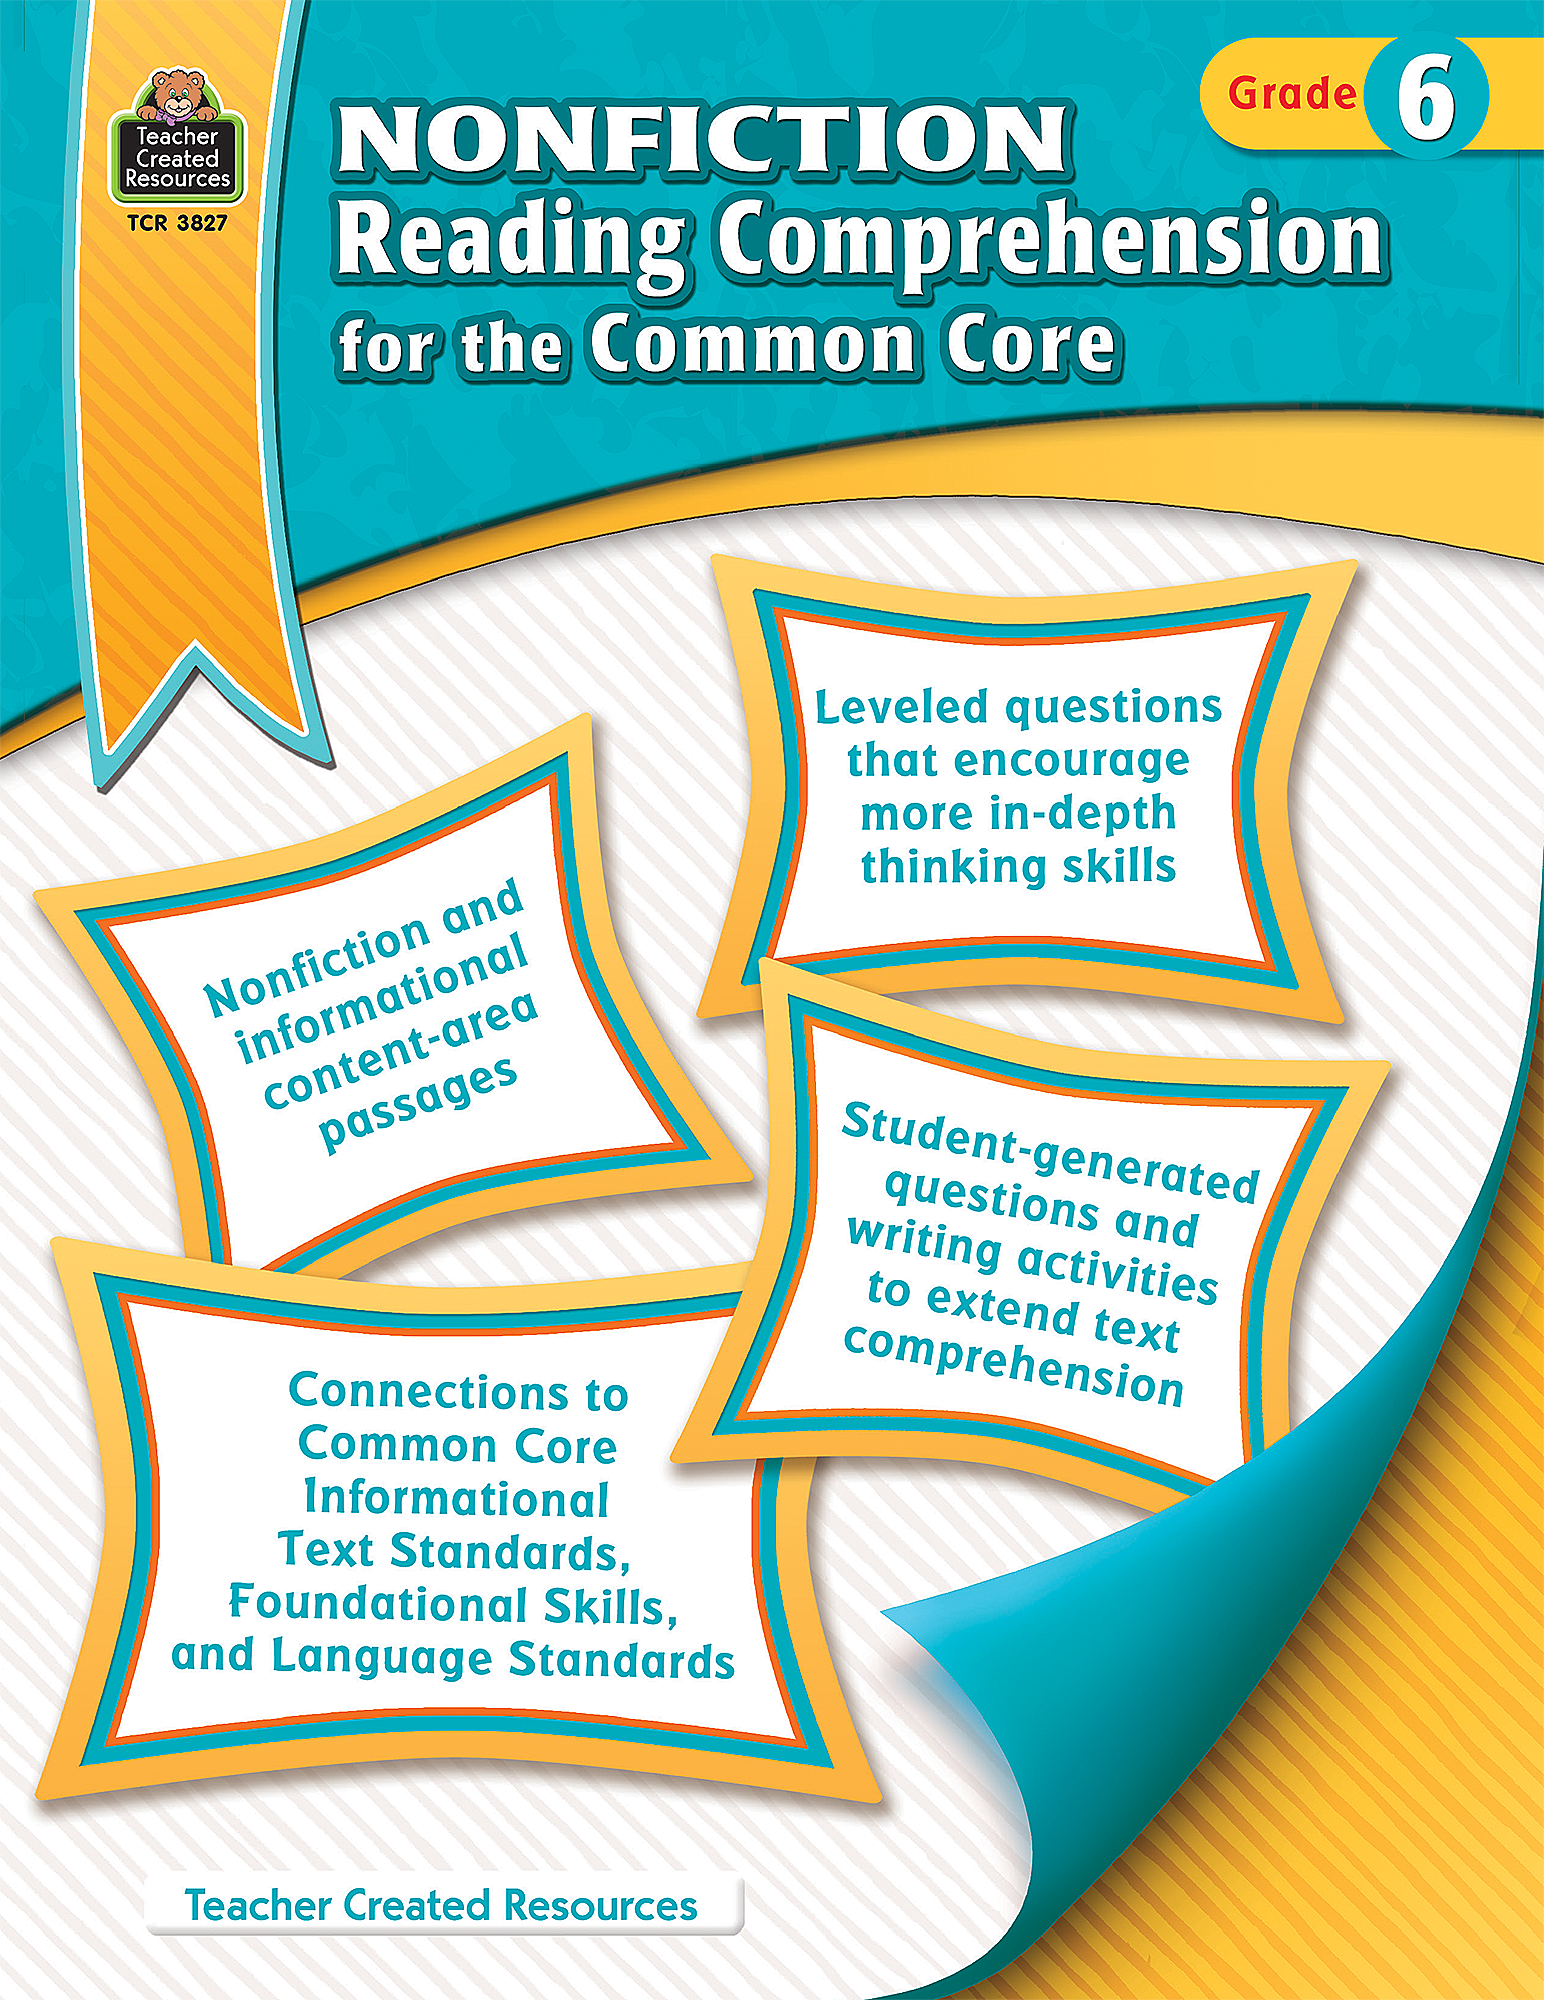 common core reading comprehension worksheets Termolak – Common Core Reading Comprehension Worksheets